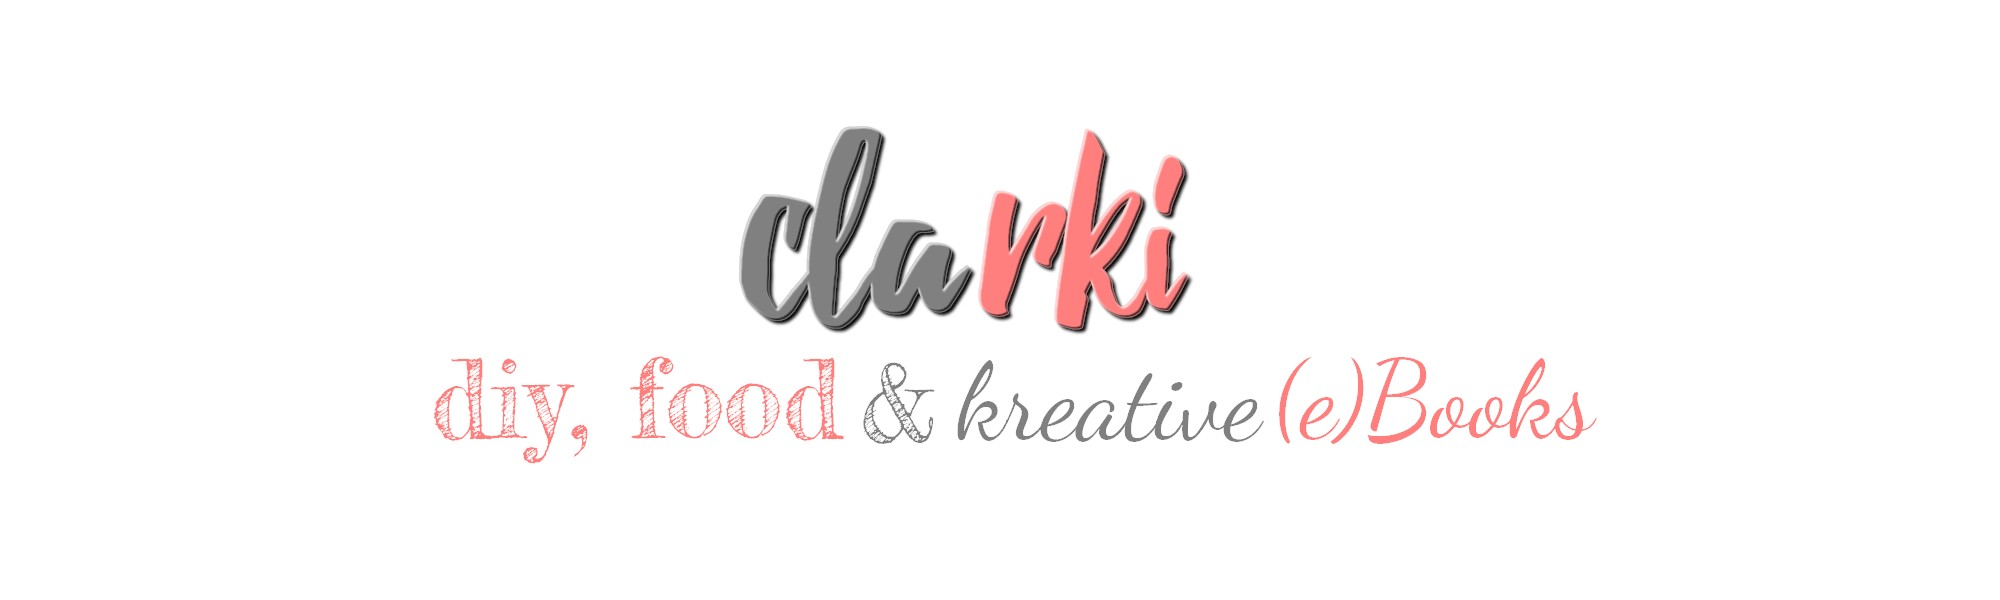 clarki.de – DIY, Fun Food, kreative Bücher & (e)Books